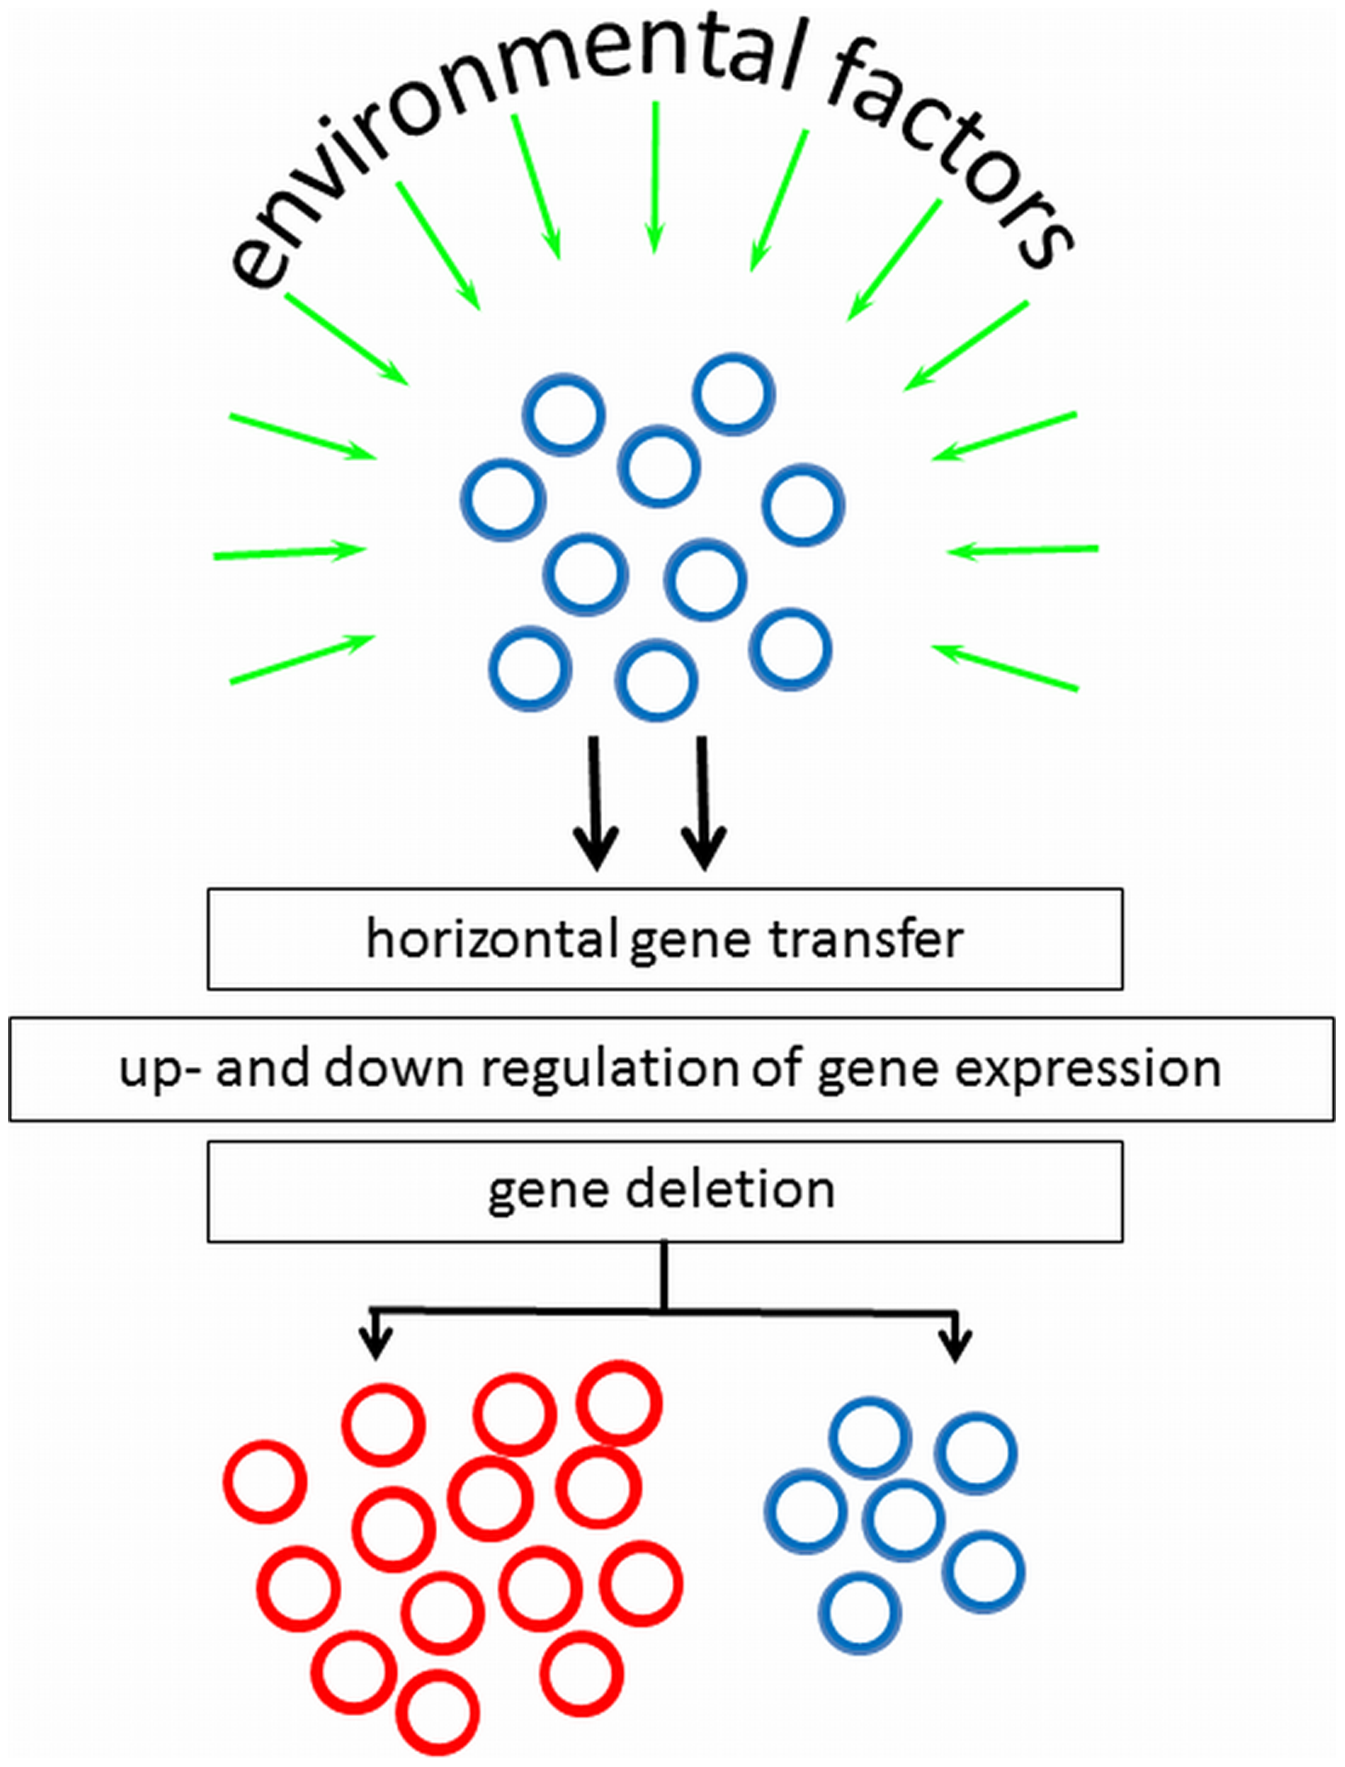 Environmental factors and genotypic mechanisms causative to appearance of subpopulations with altered phenotypic appearance, starting from a culture with homogeneous cell surface properties.